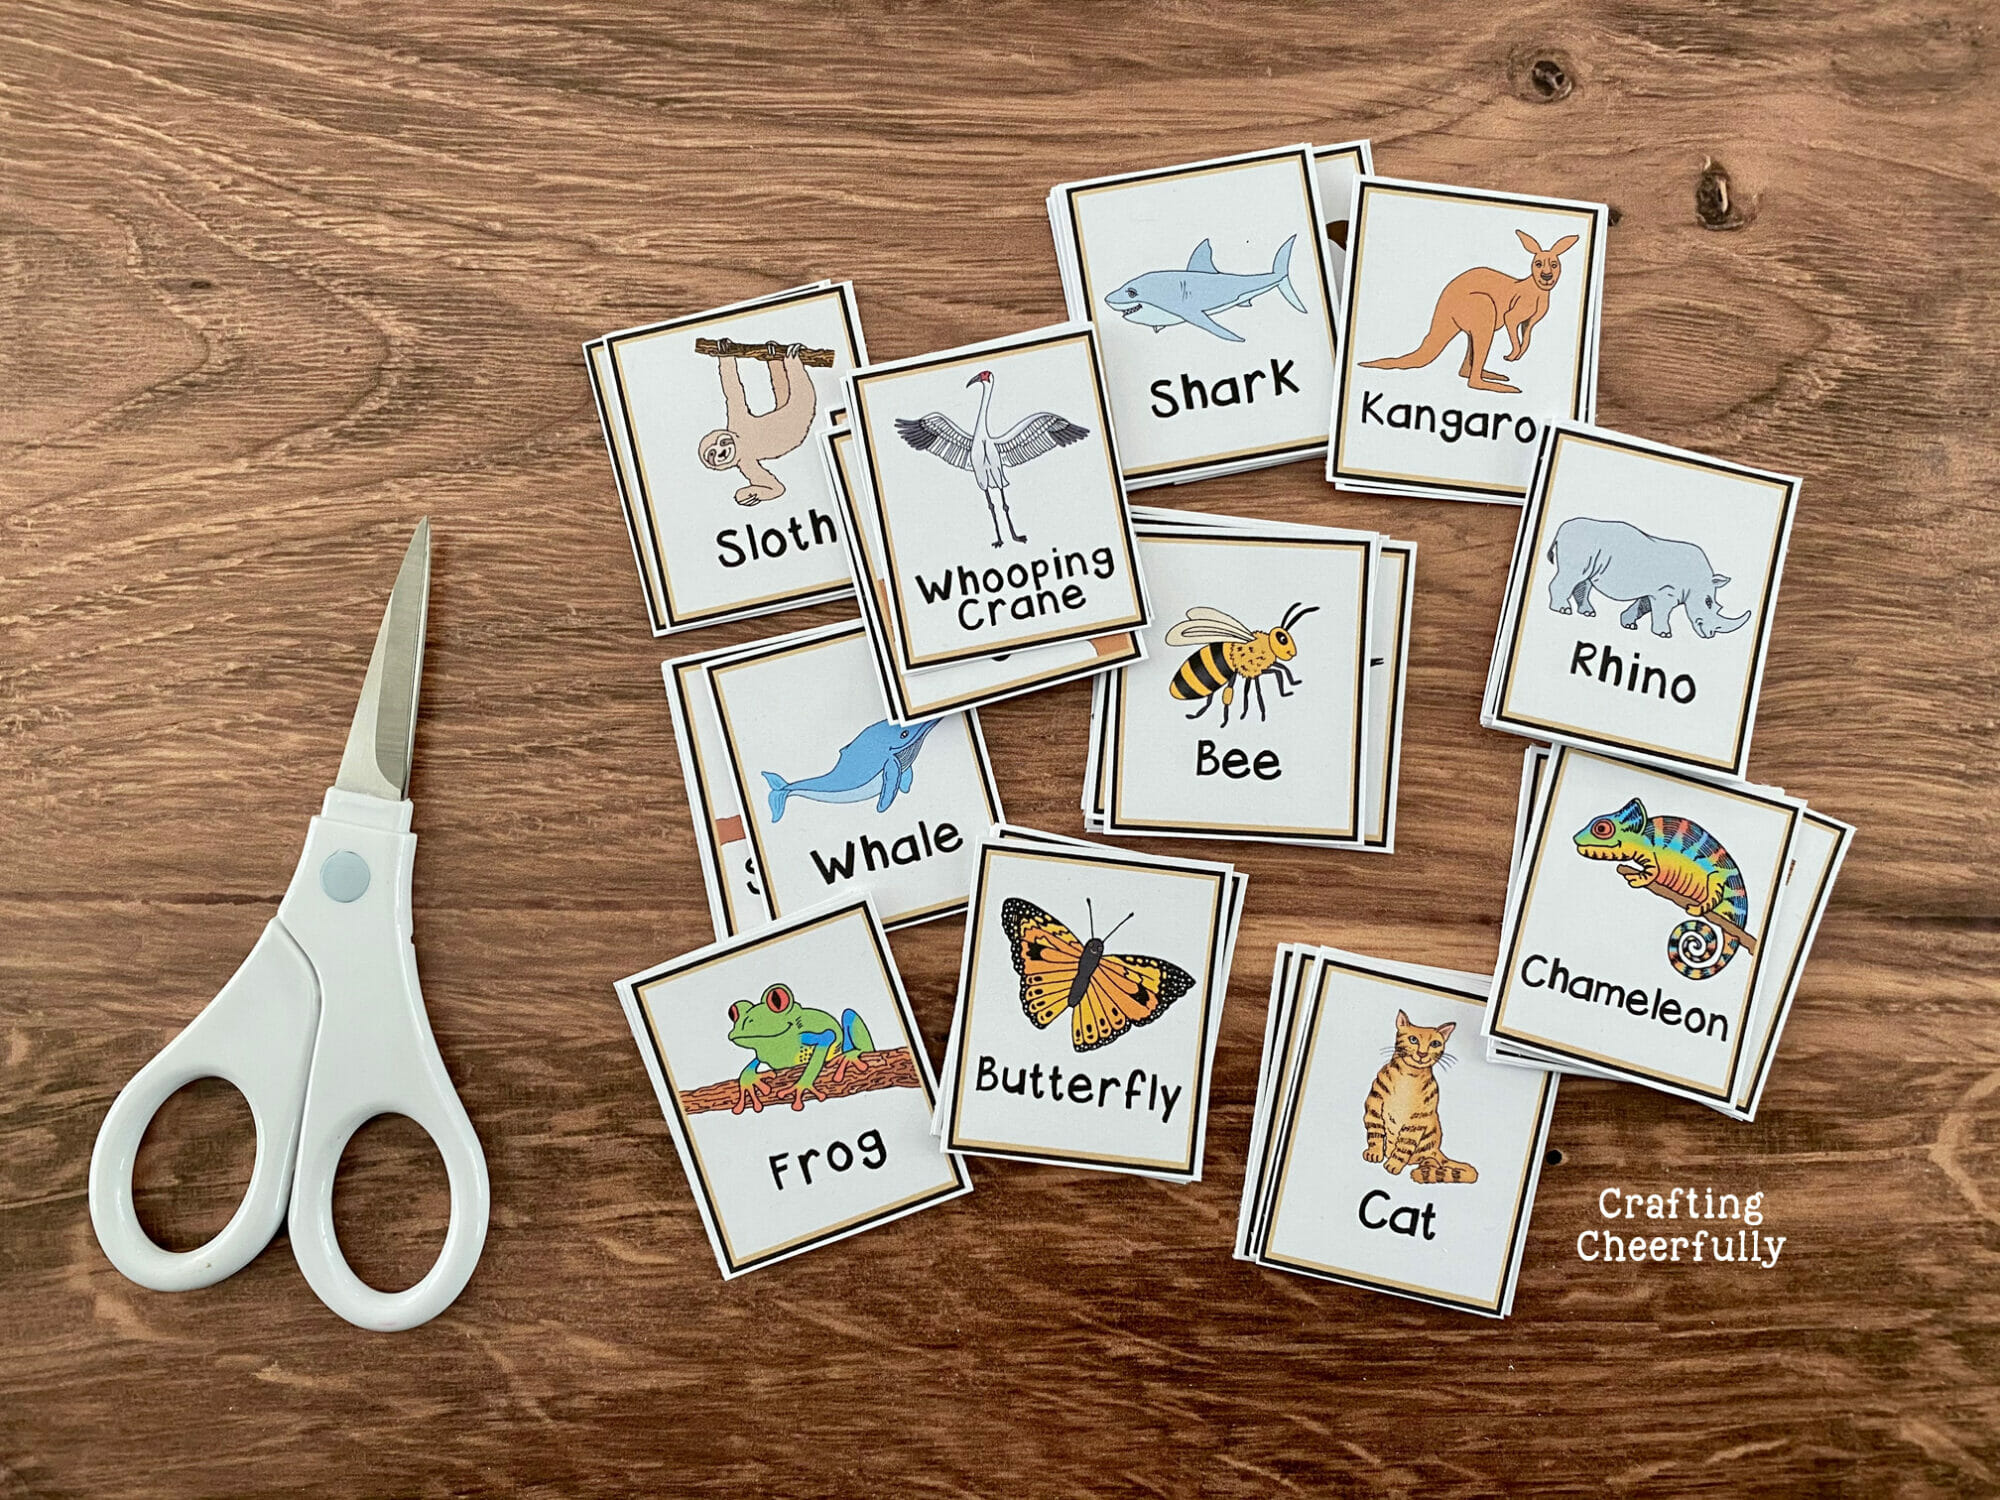 Calling cards for Animal BINGO lay on a table with a white scissors.